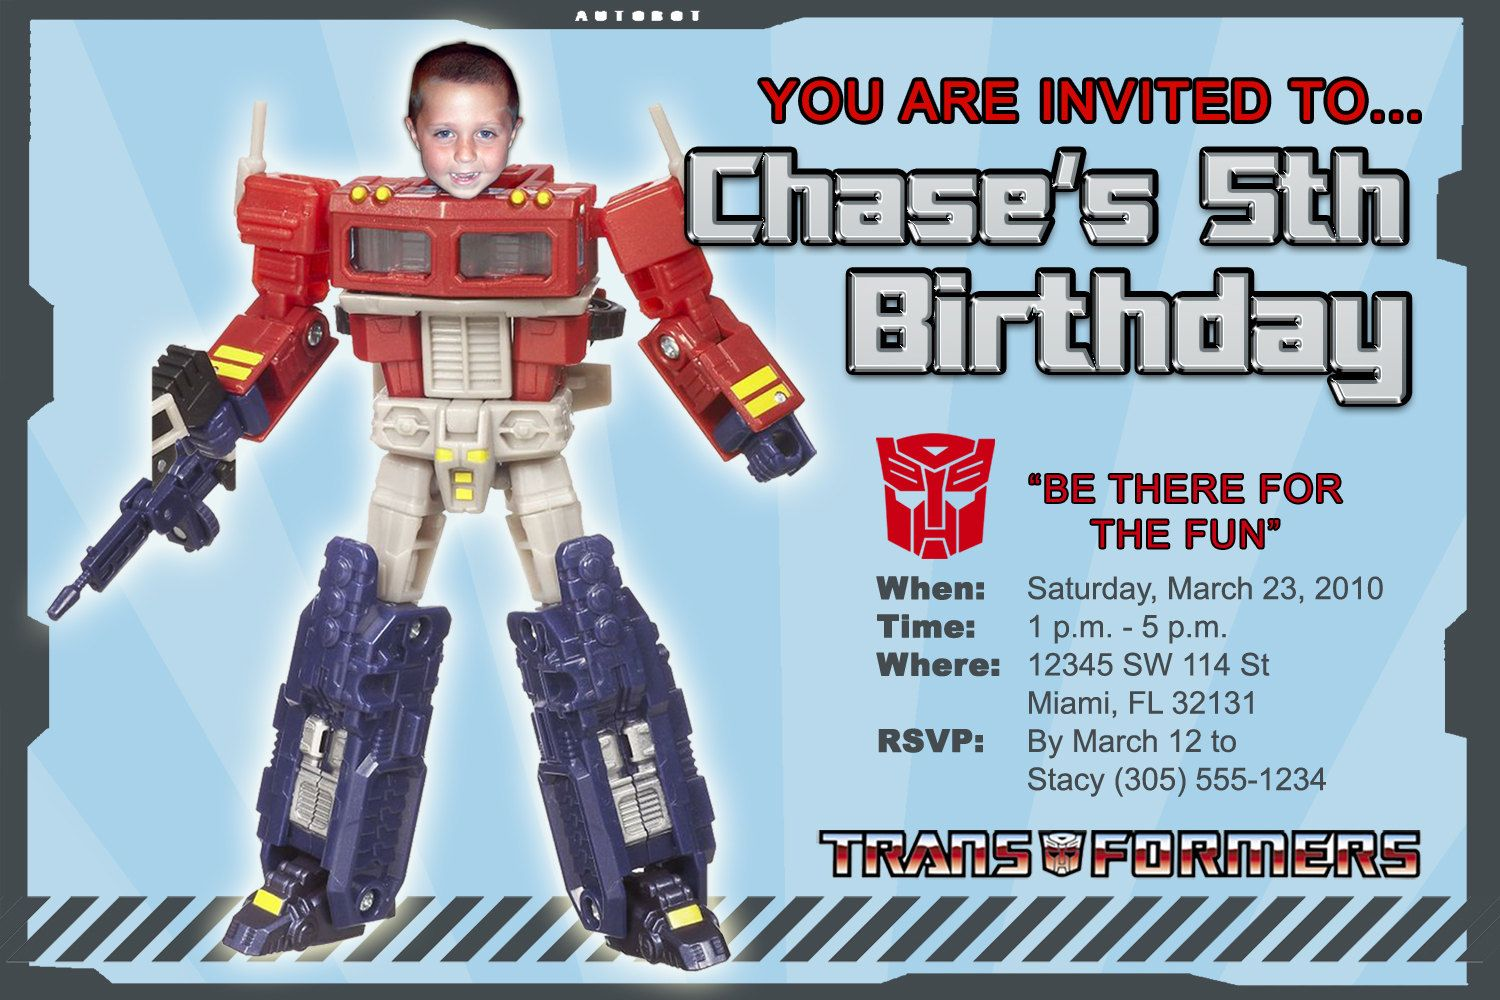 Transformers Invitations Custom Designed with Your Child as the